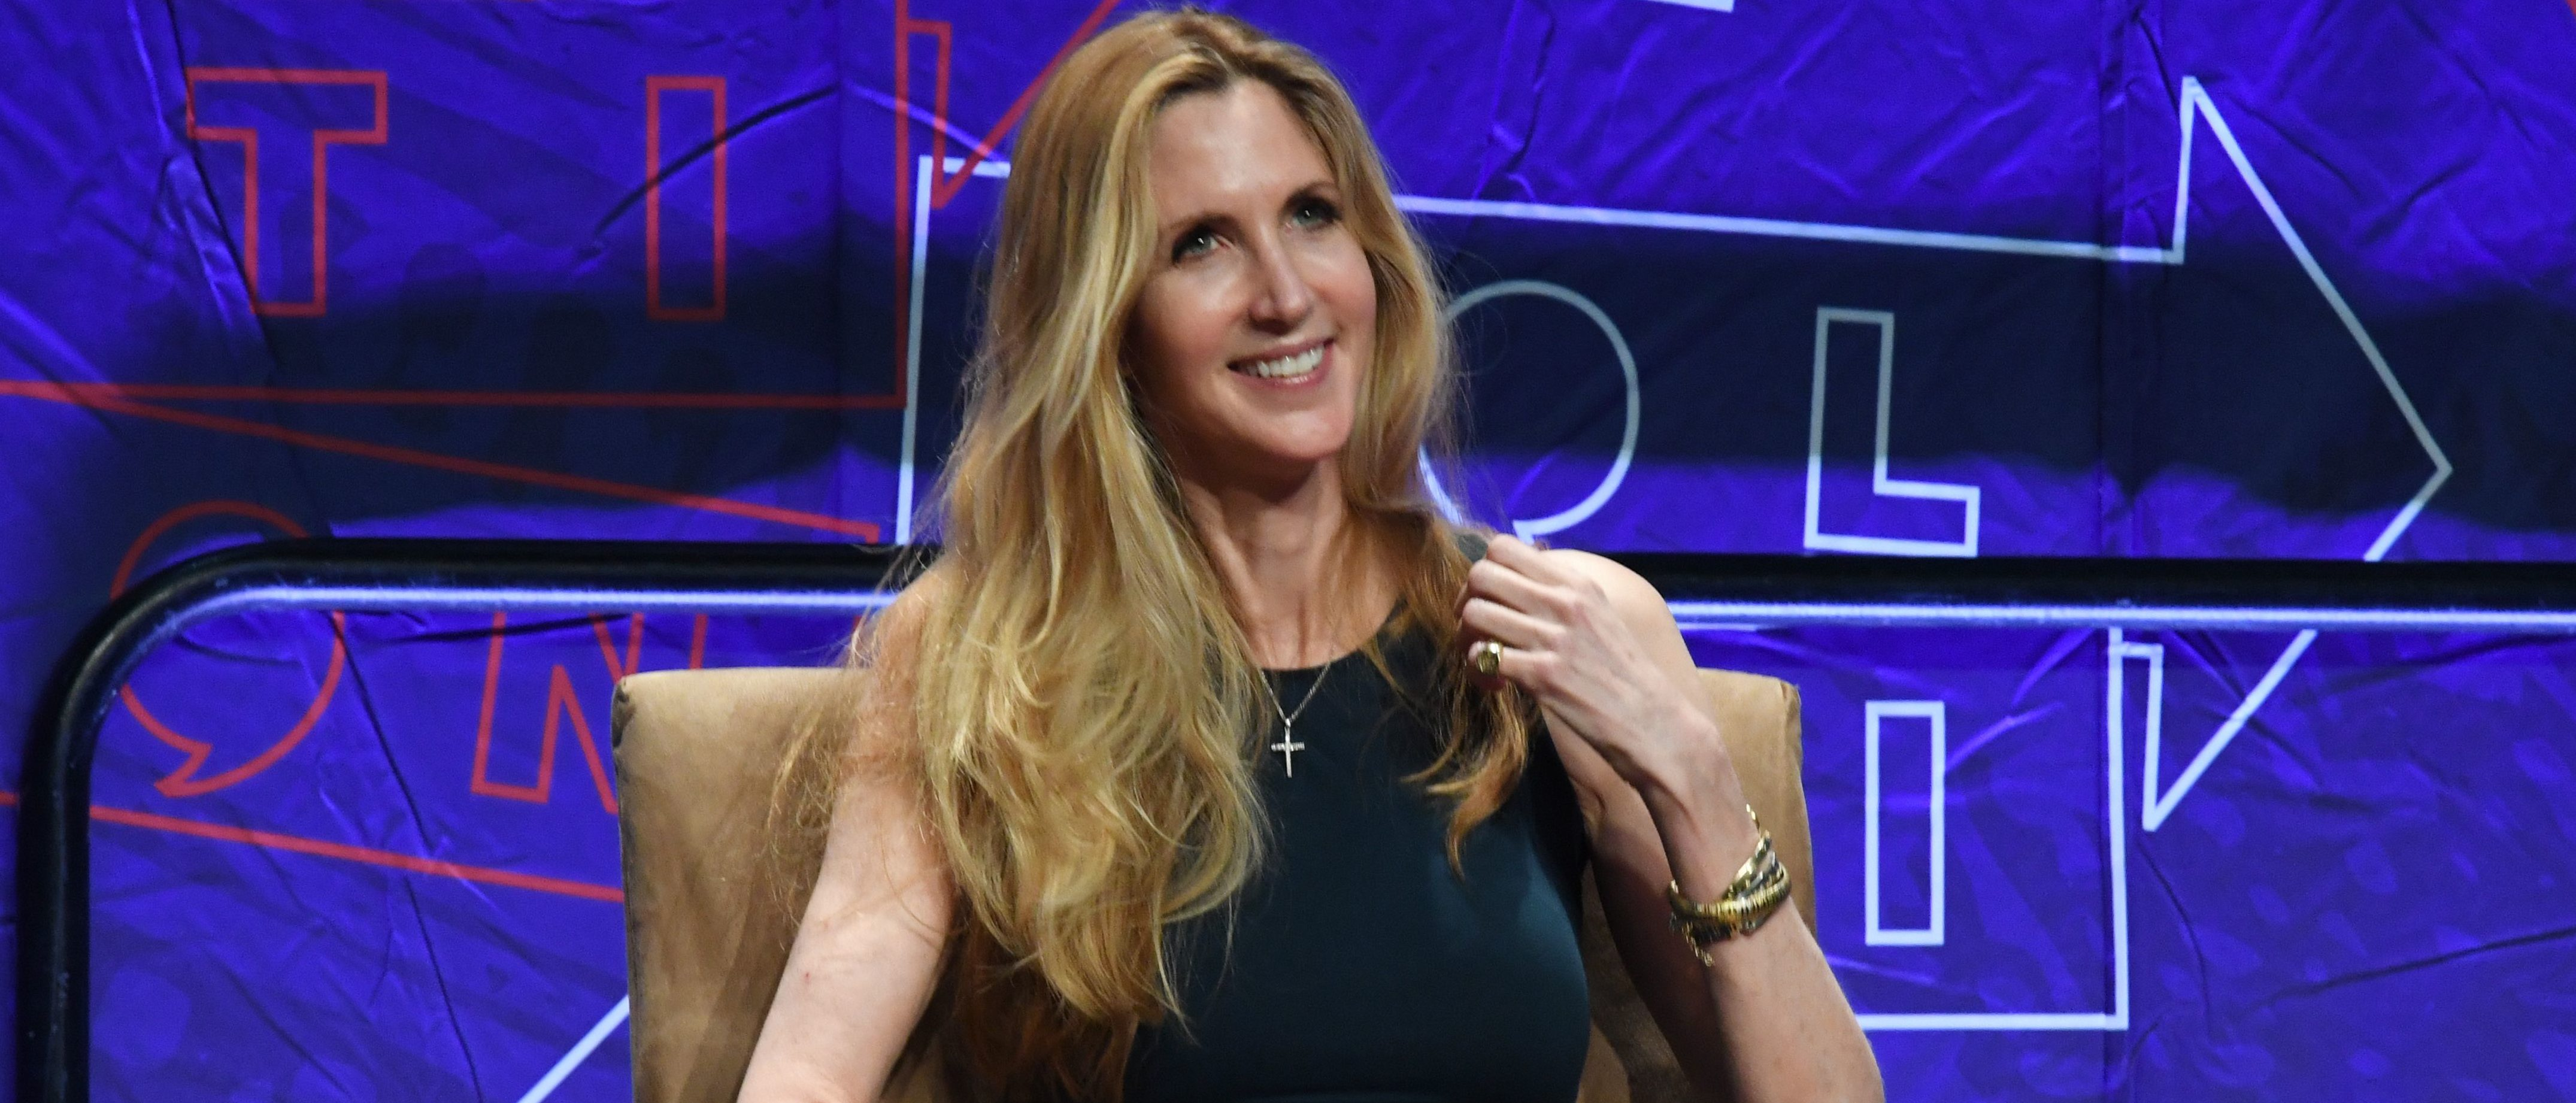 Conservative political commentator Ann Coulter reacts during a panel discussion at the 2018 Politicon in Los Angeles, California on October 20, 2018. MARK RALSTON/AFP/Getty Images